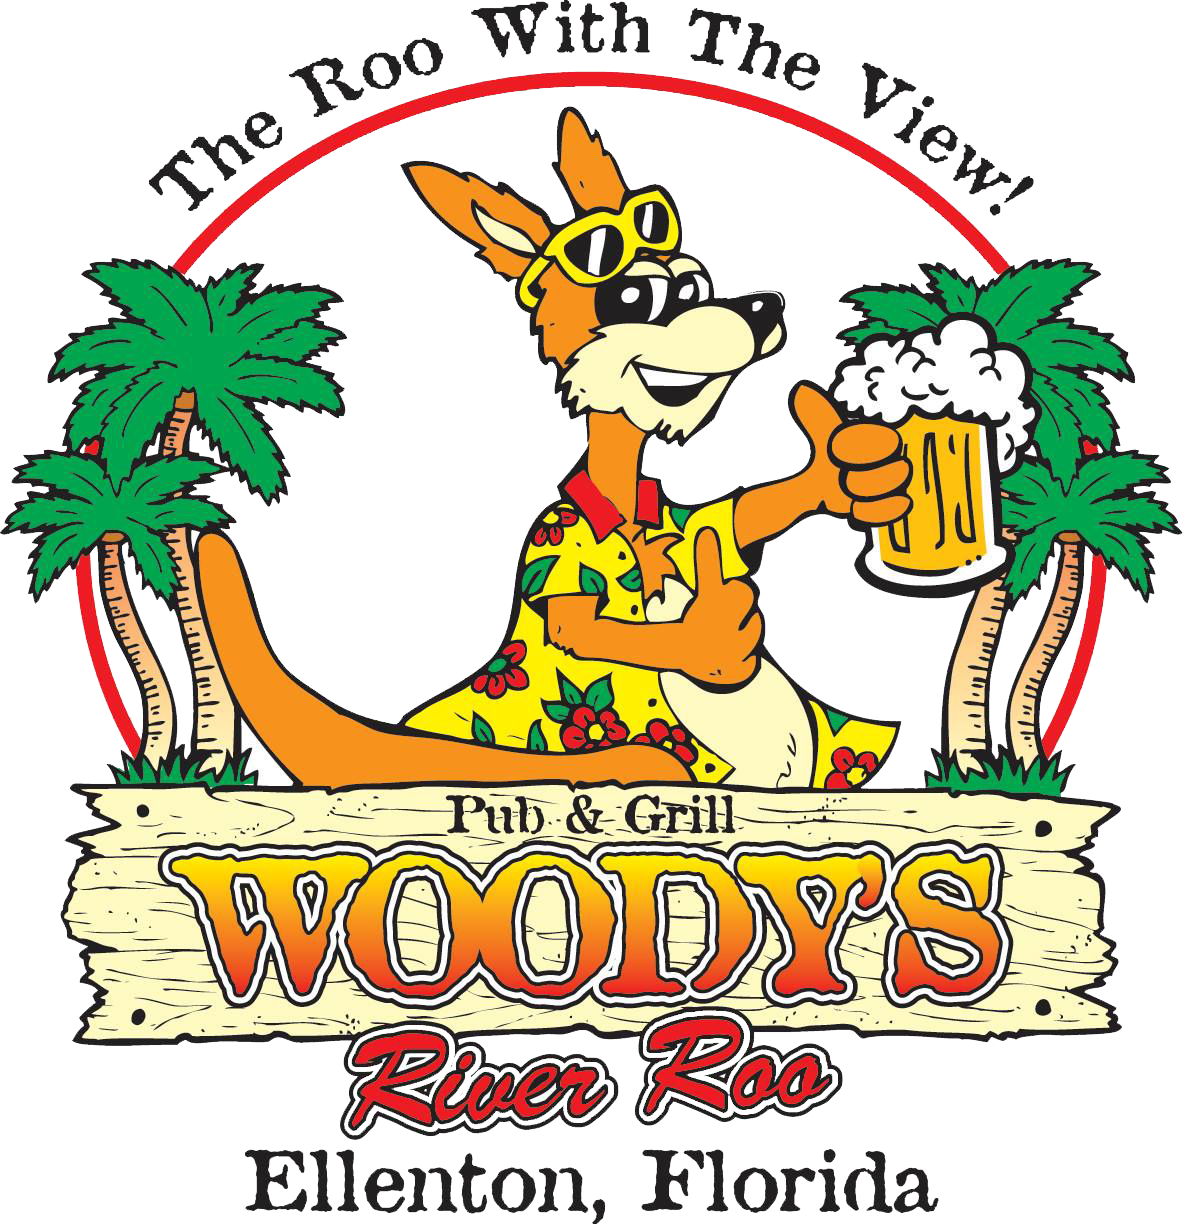 Woody's River Roo